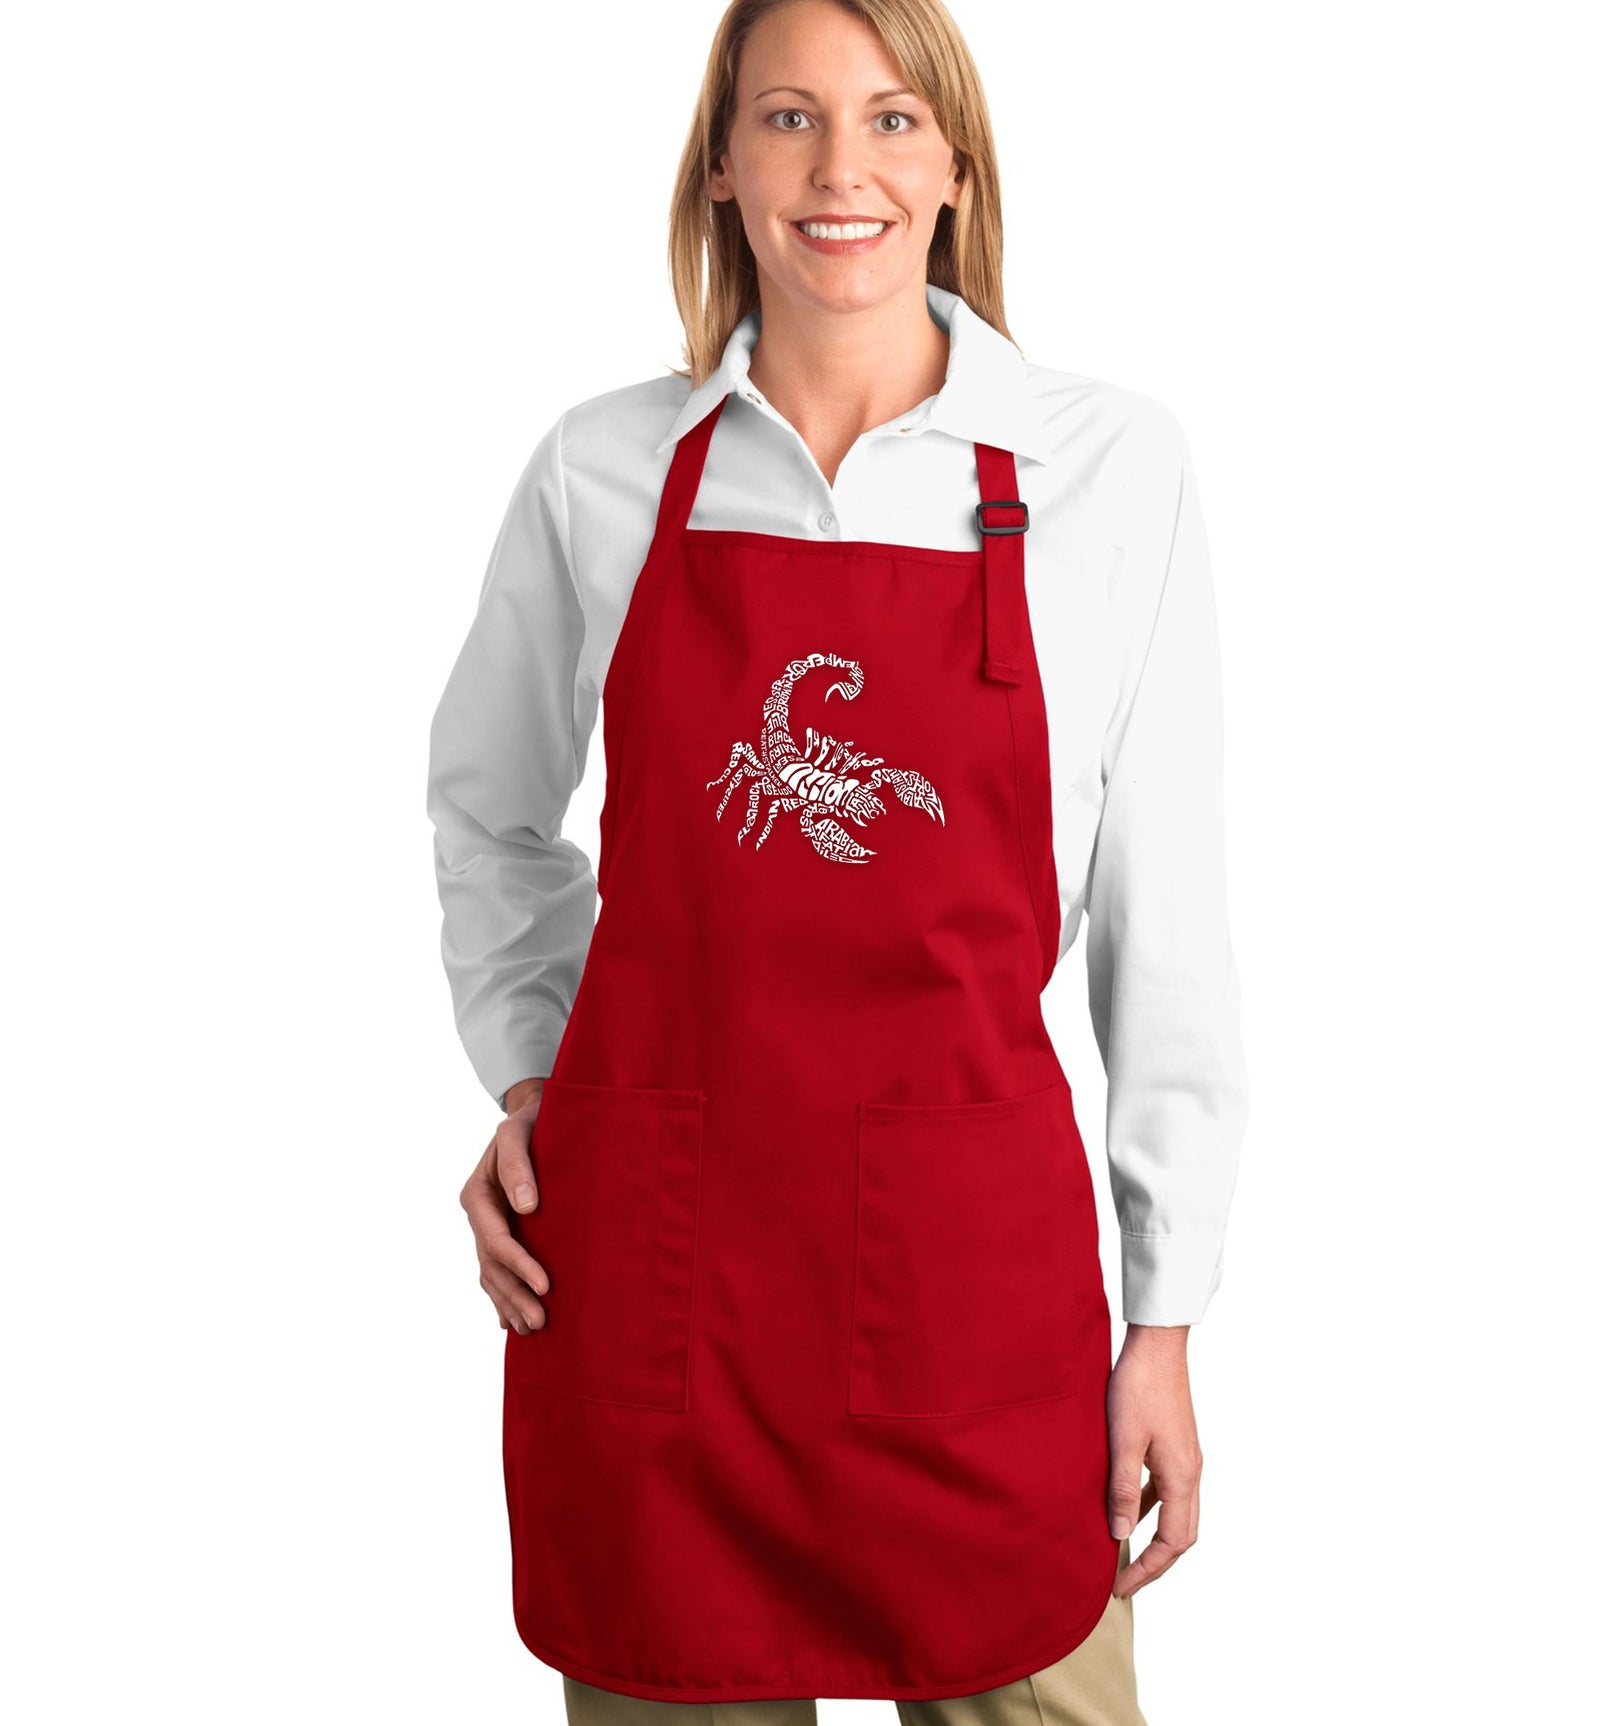 Full Length Word Art Apron - Types of Scorpions